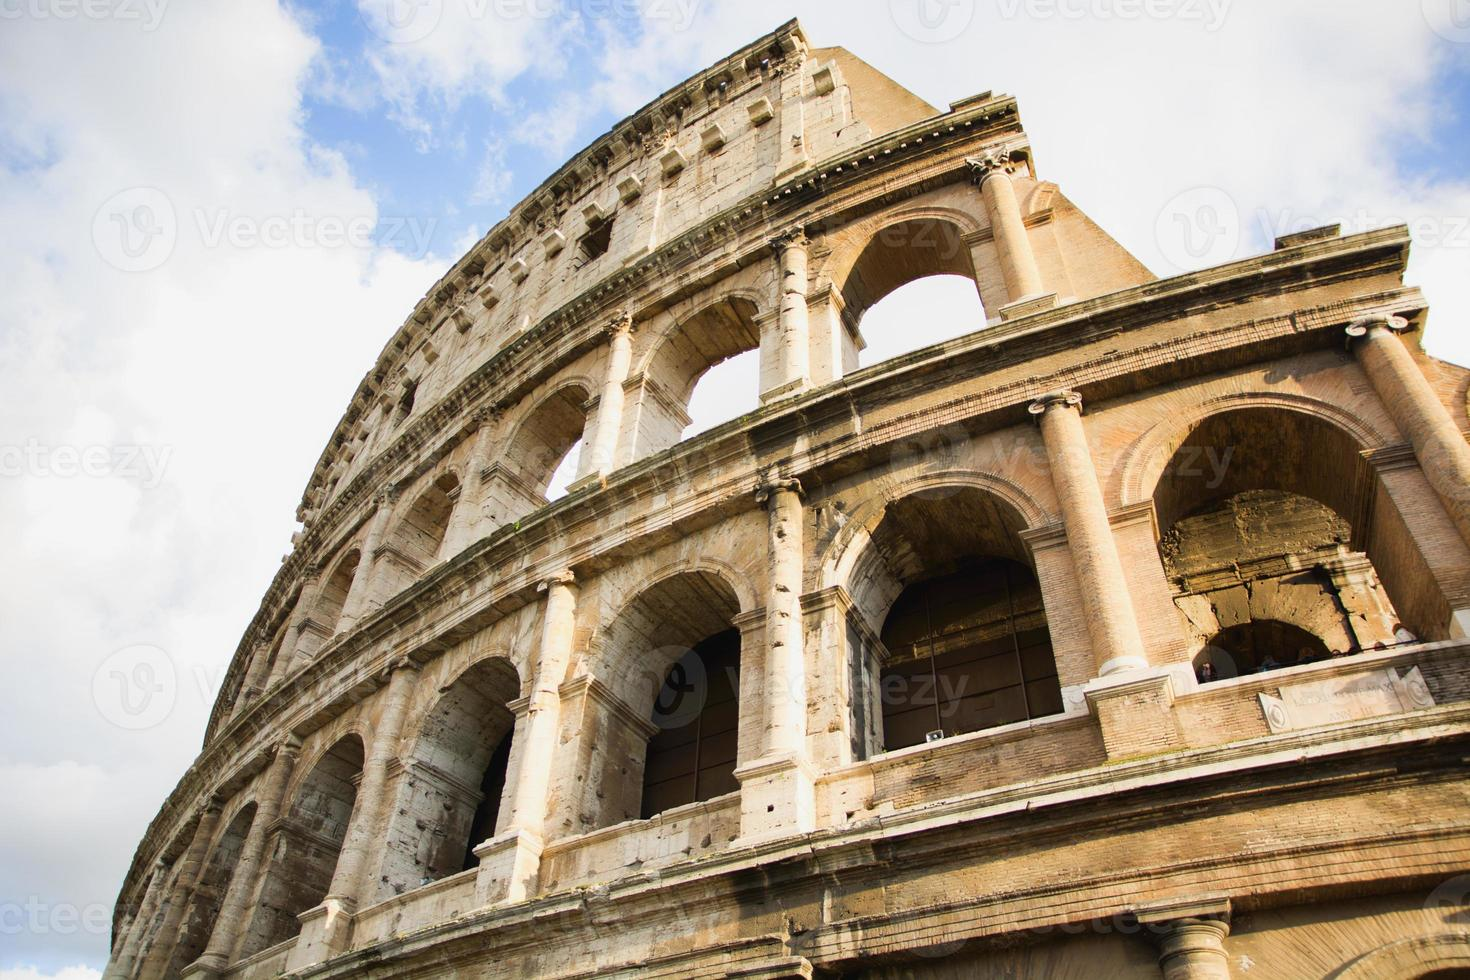 View of Colosseum in Rome, Italy during the day photo